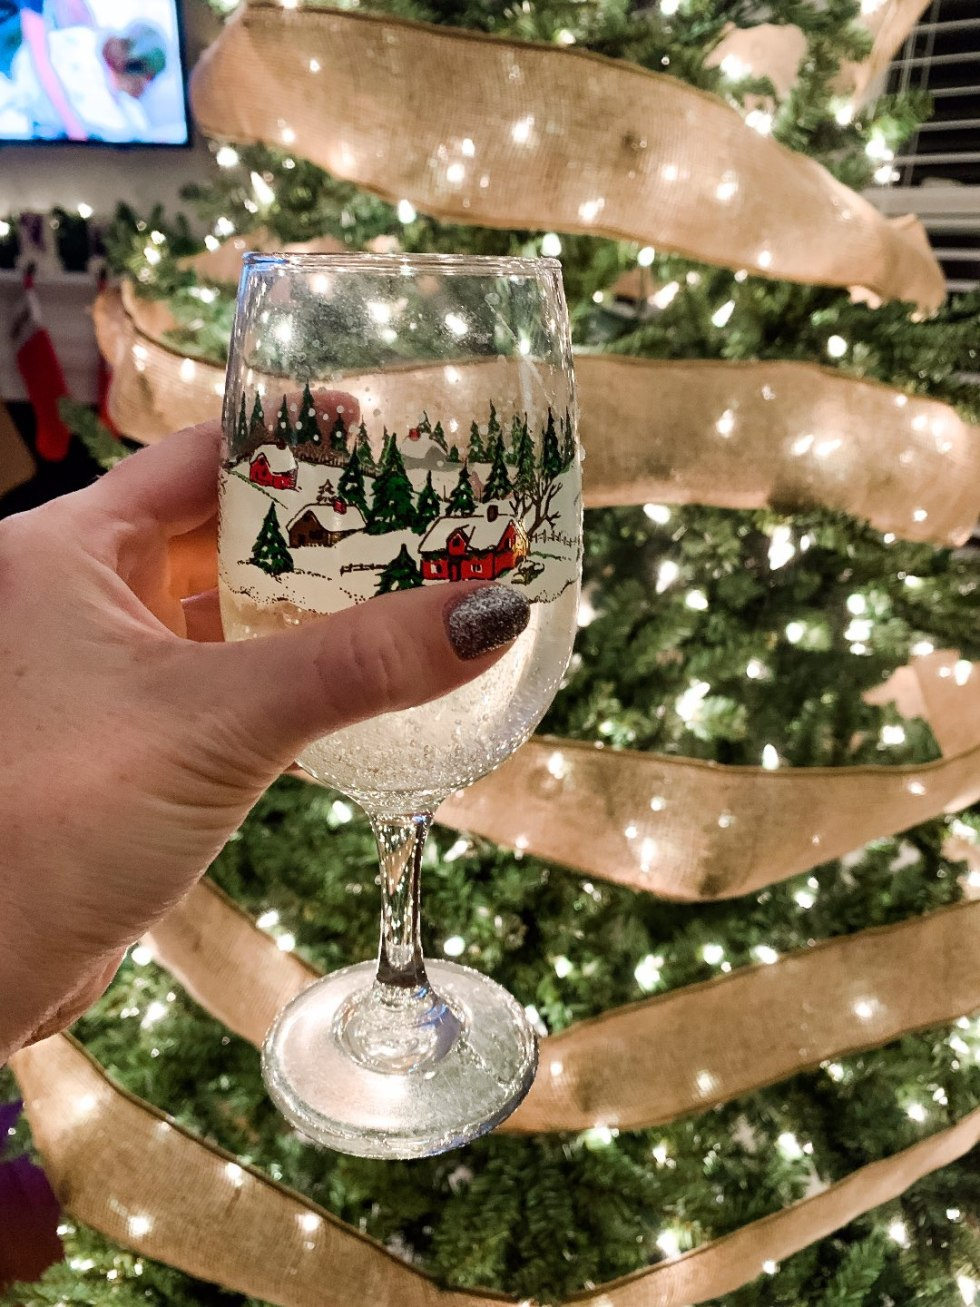 Holiday Home Decor Tour - I'm Fixin' To - @mbg0112 | Holiday Home Decor Tour by popular North Carolina life and style blog, I'm Fixin' To: image of a woman holding a Christmas drinking glass in her hand.